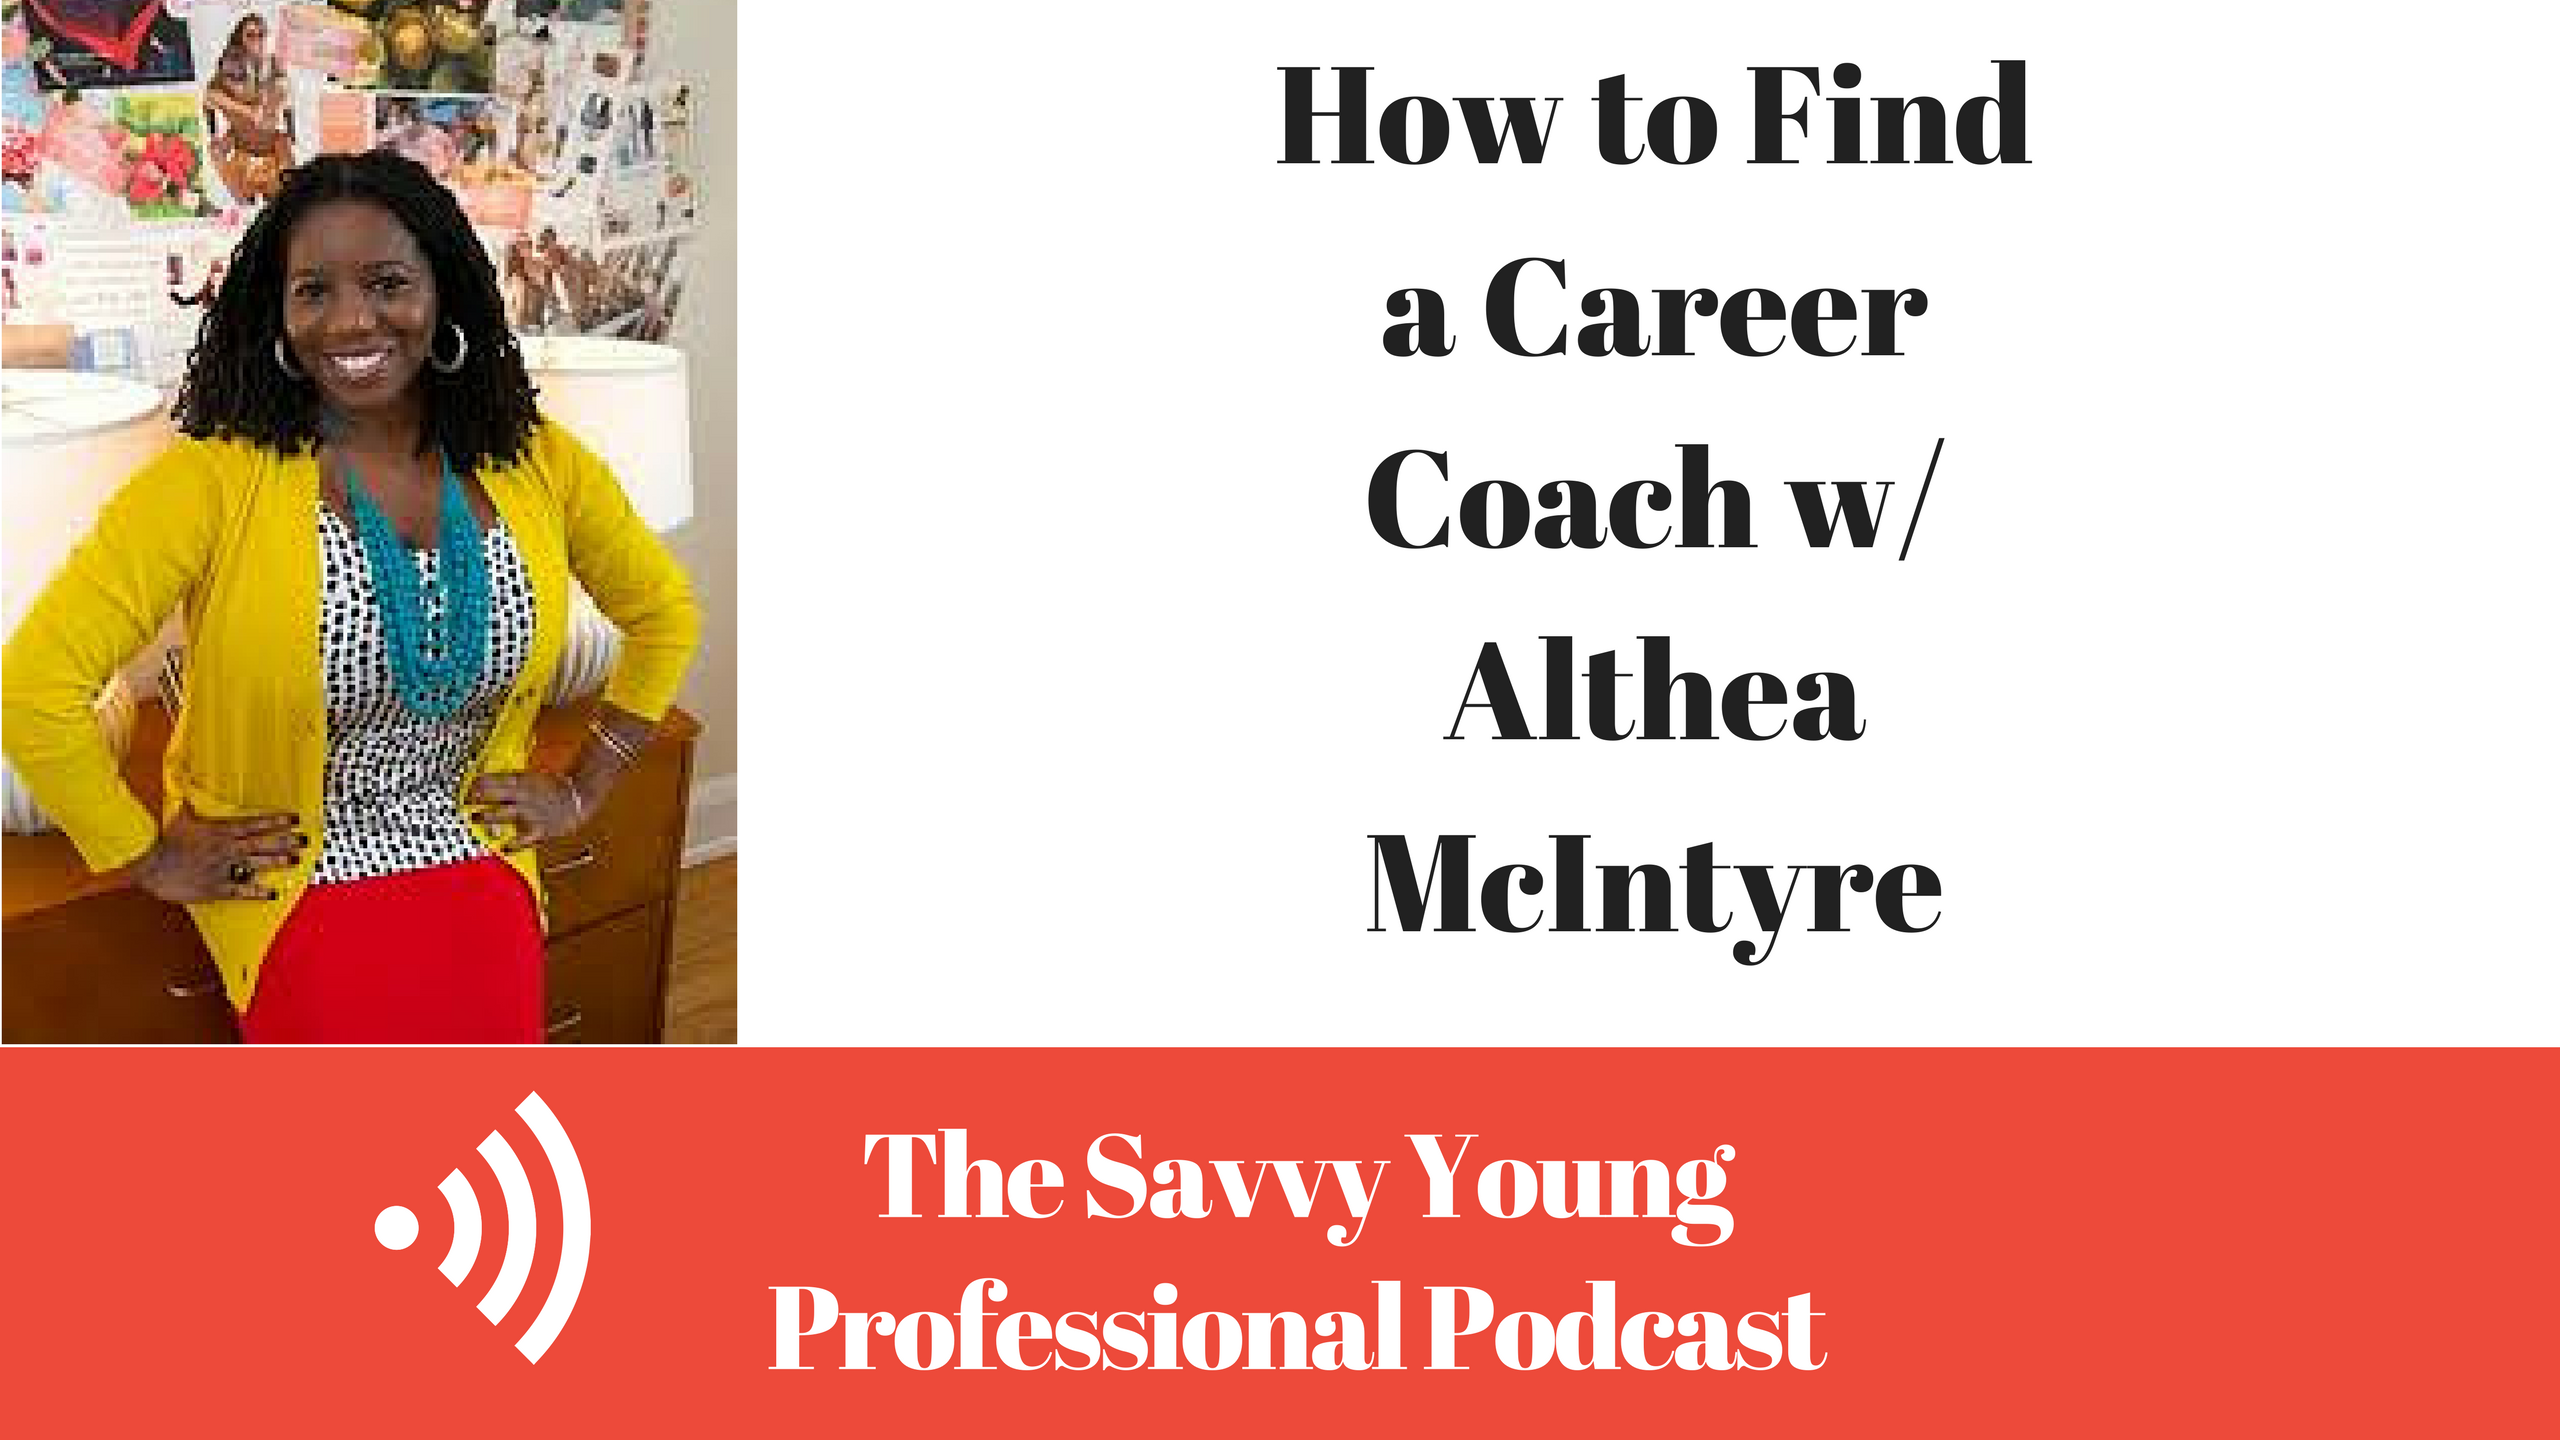 podcast-8-find-career-coach-w-althea-mcintyre